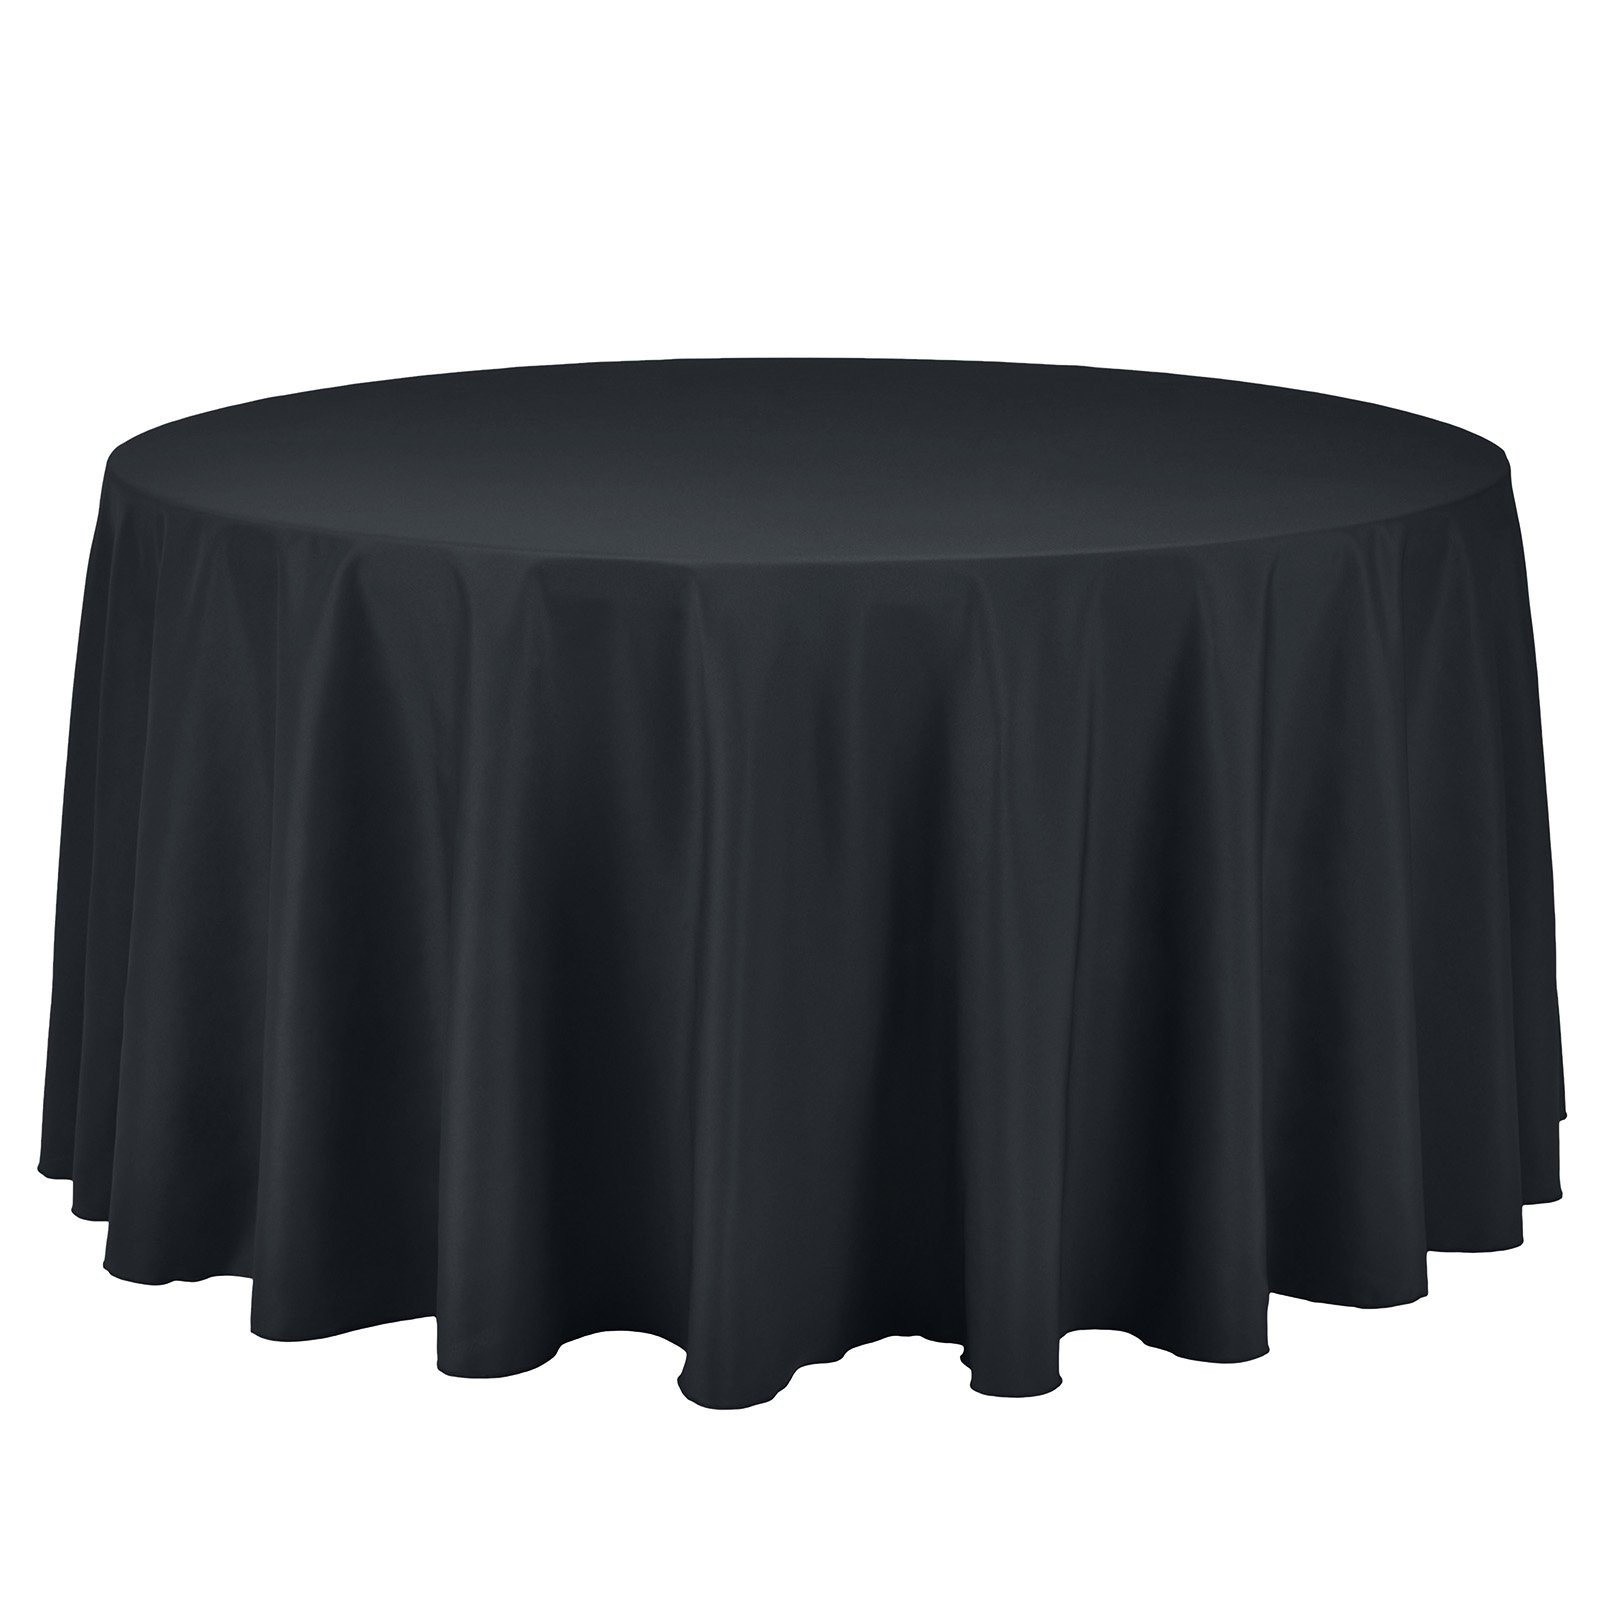 Remedios Round Tablecloth Solid Color Polyester Table Cloth for Bridal Shower Wedding Table – Wrinkle Free Dinner Tablecloth for Restaurant Party Banquet (Dark Gray, 108 inch)